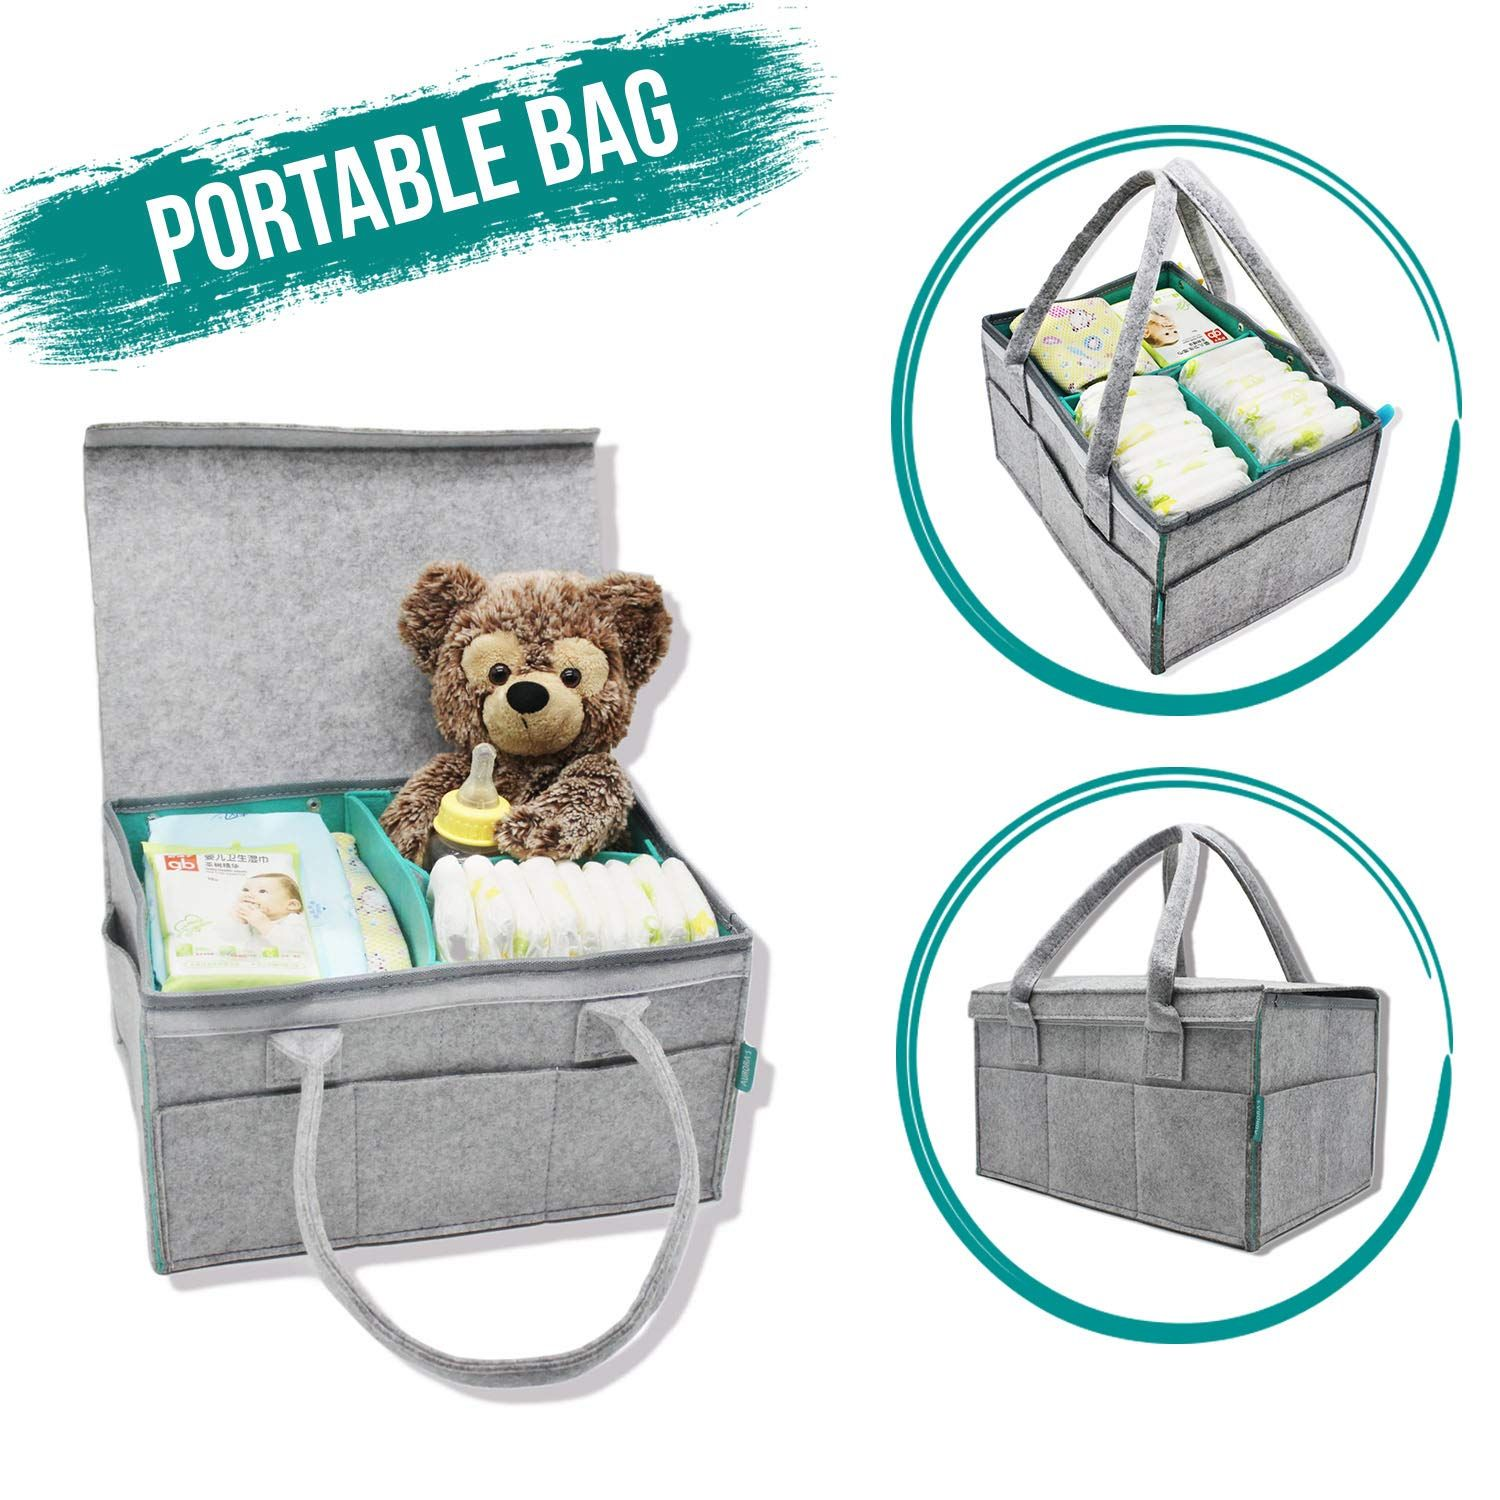 Zooawa Foldable Travel Bassinet 3 In 1 Diaper Bag Portable Collapsible Bassinet And Travel Changing Station For Home Travel Travel Bassinet Bassinet Baby Bed